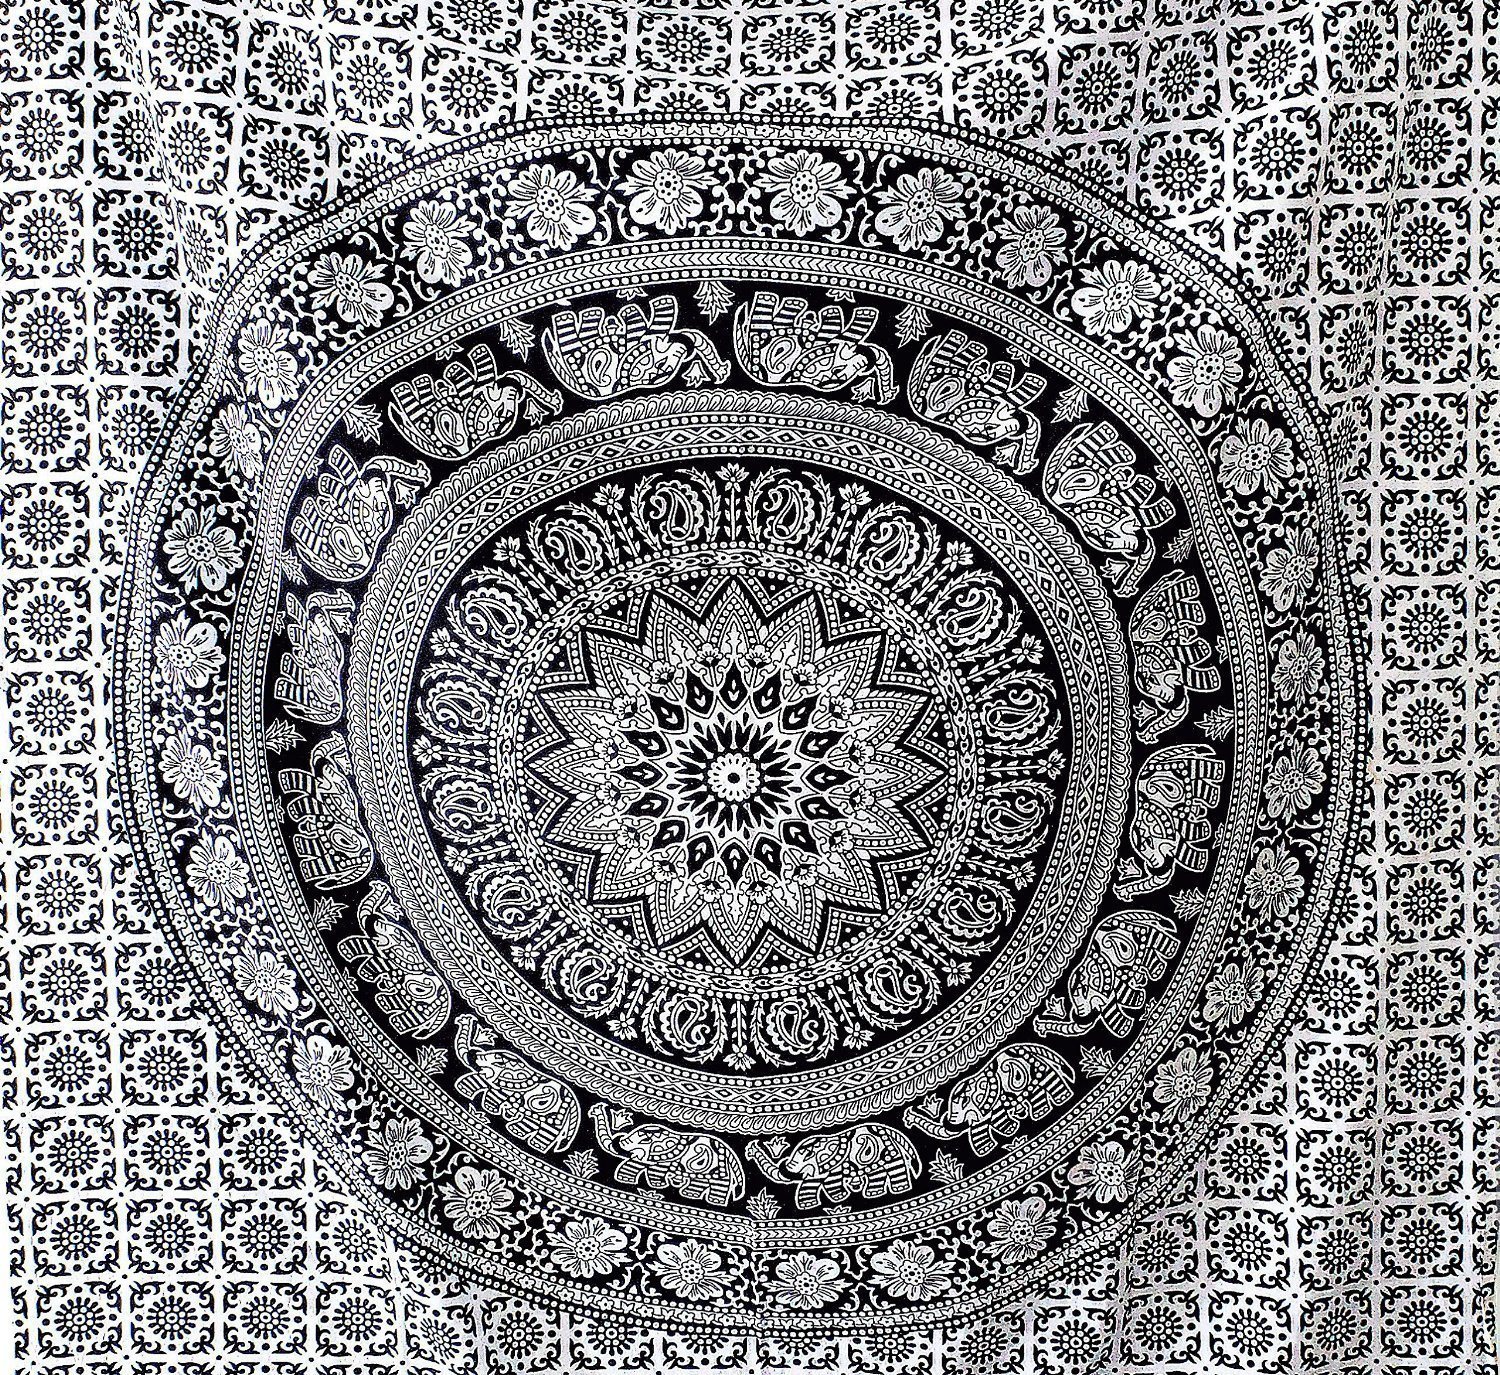 Popular Handicrafts Black and White Hippie tapestries Mandala Tapestry Collage dorm Beach Throw Wall Art Bohemian tapestryWall Hanging Boho tapestries Bedspread (Full (215cmsx230cms), Black & White)